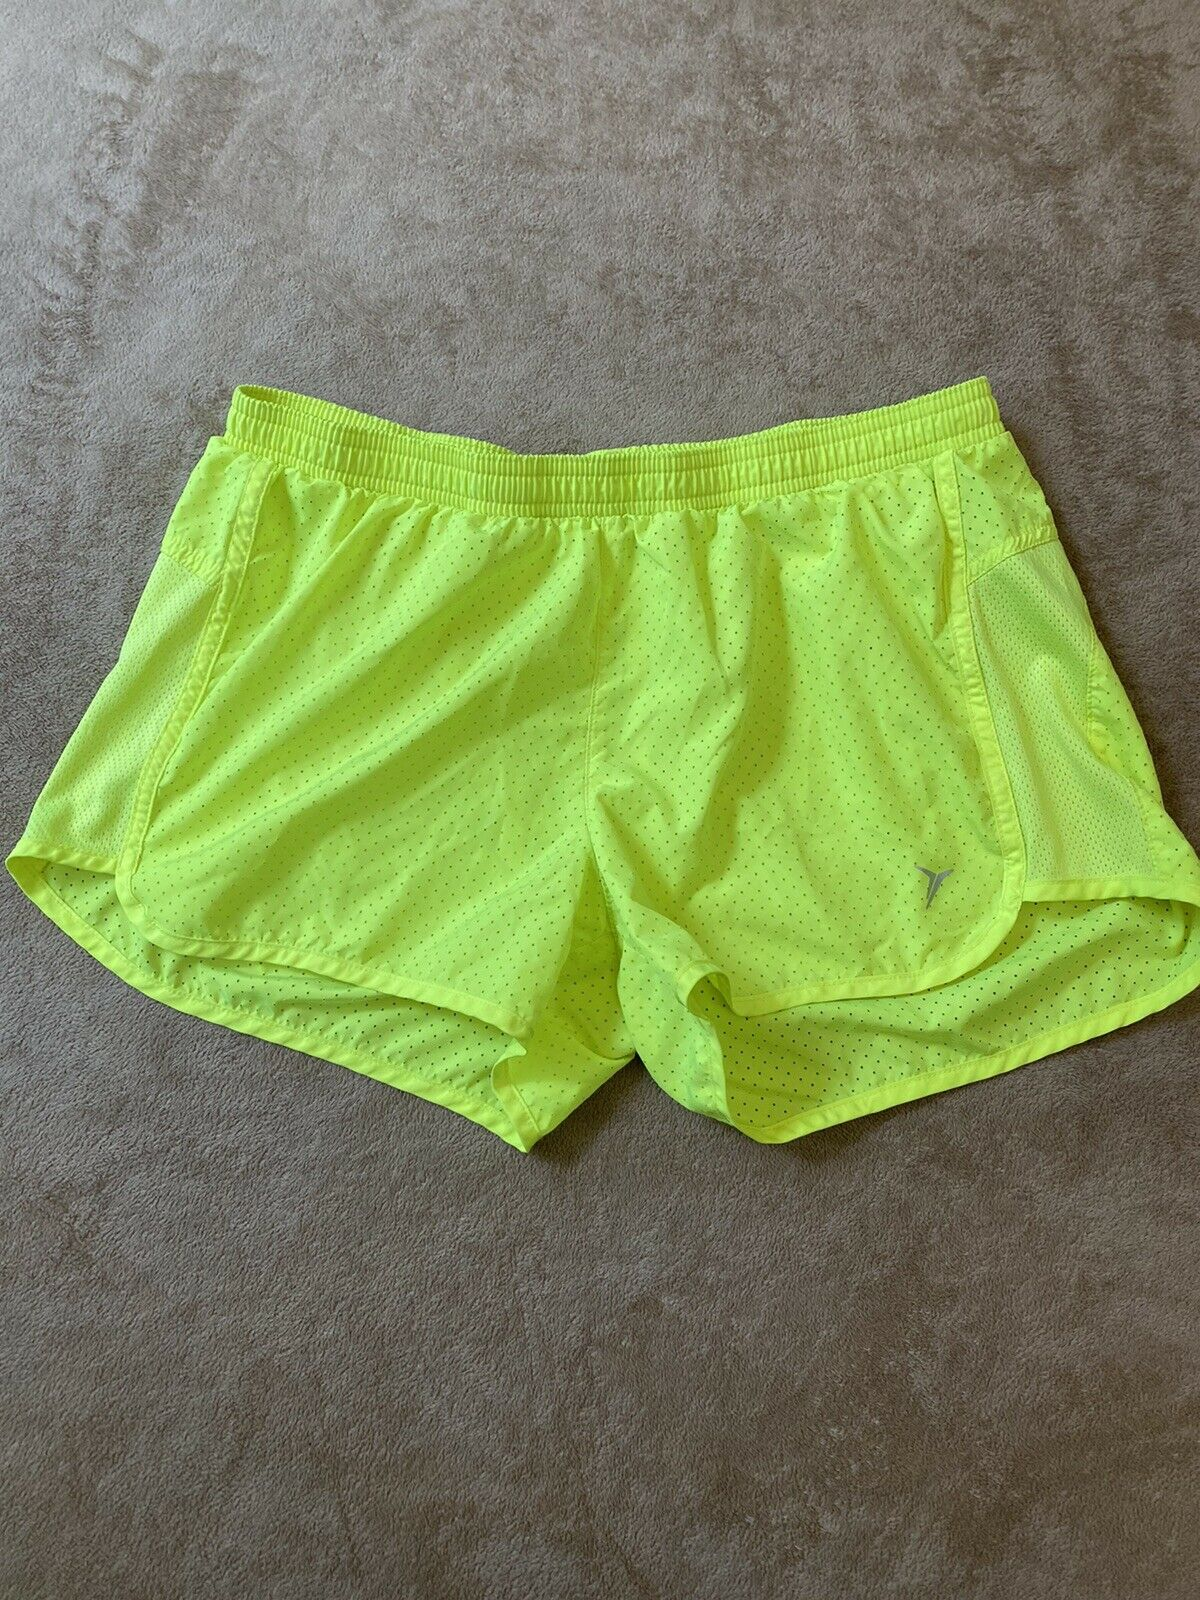 Old Navy Woman's Size M TEMPO Running Athletic Shorts Yellow